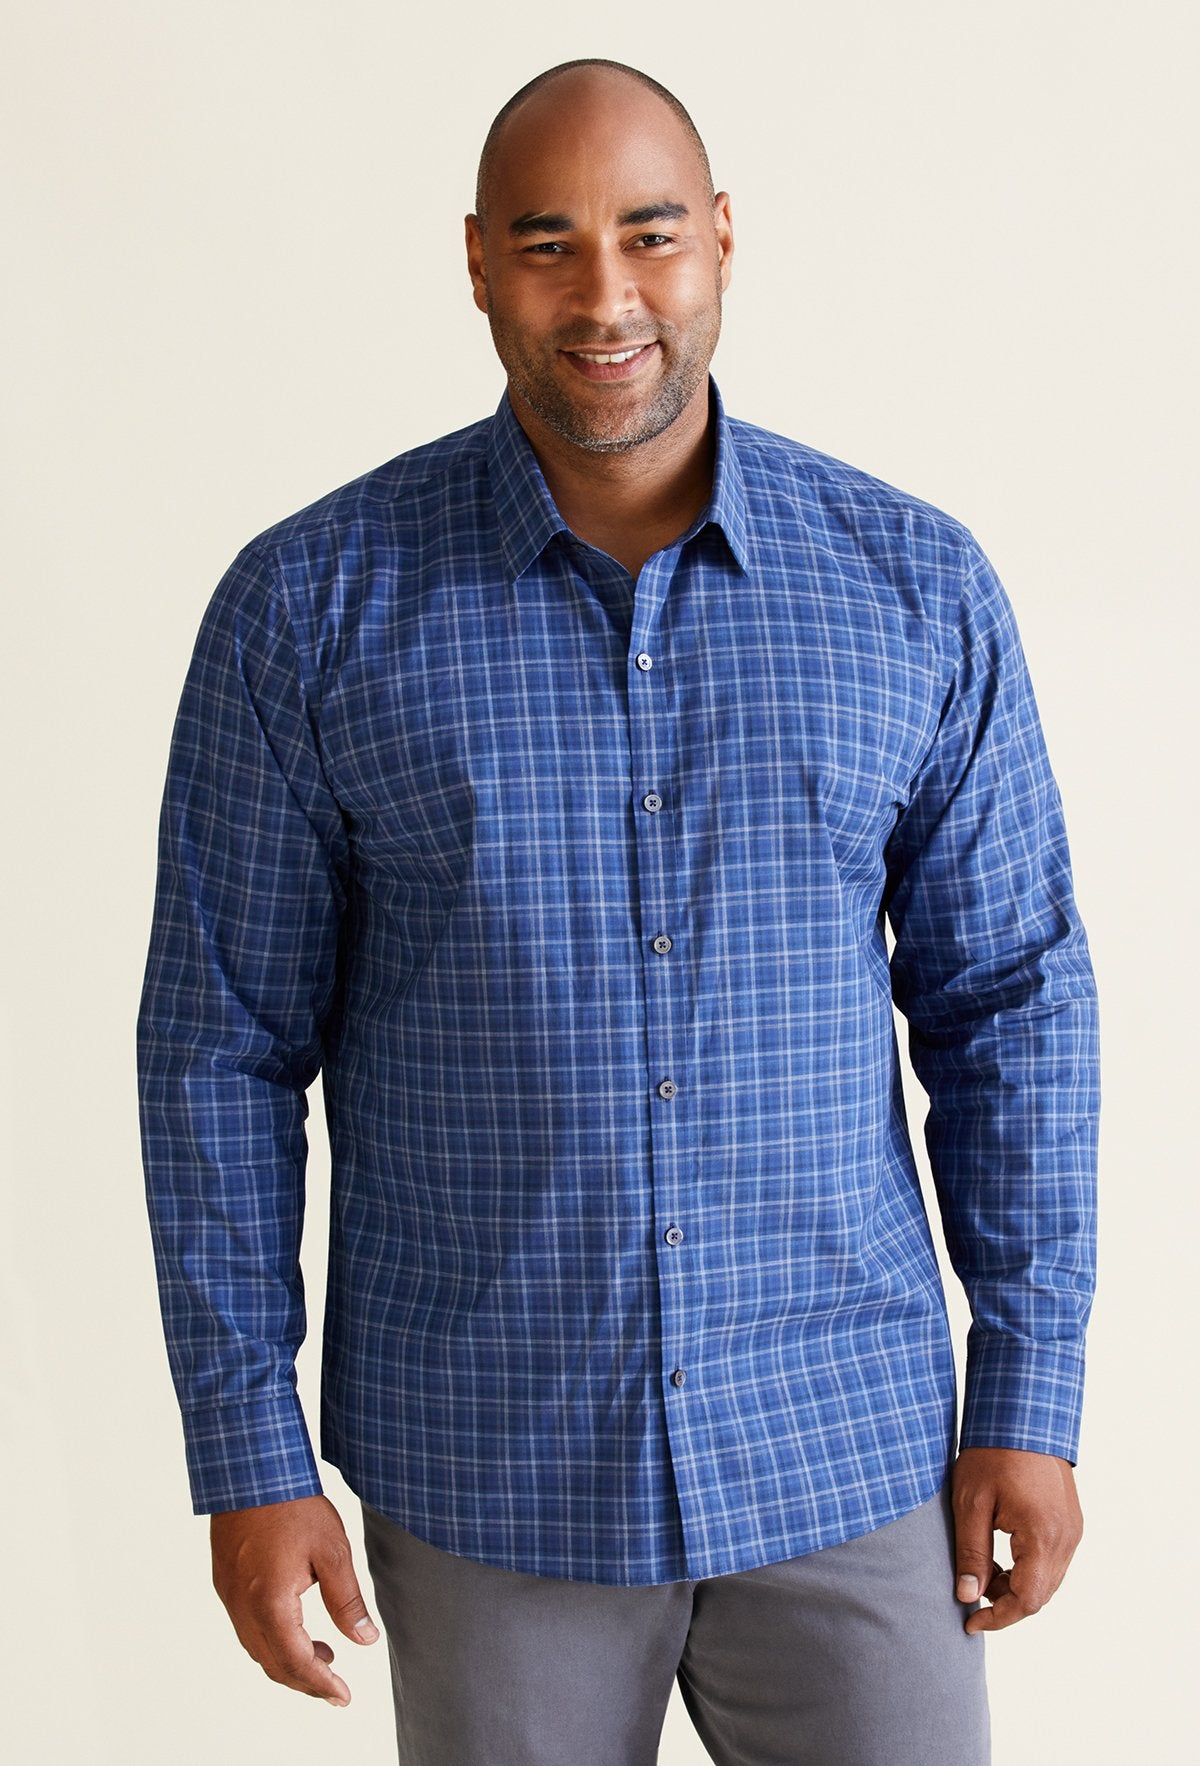 dark blue plaid shirt men's